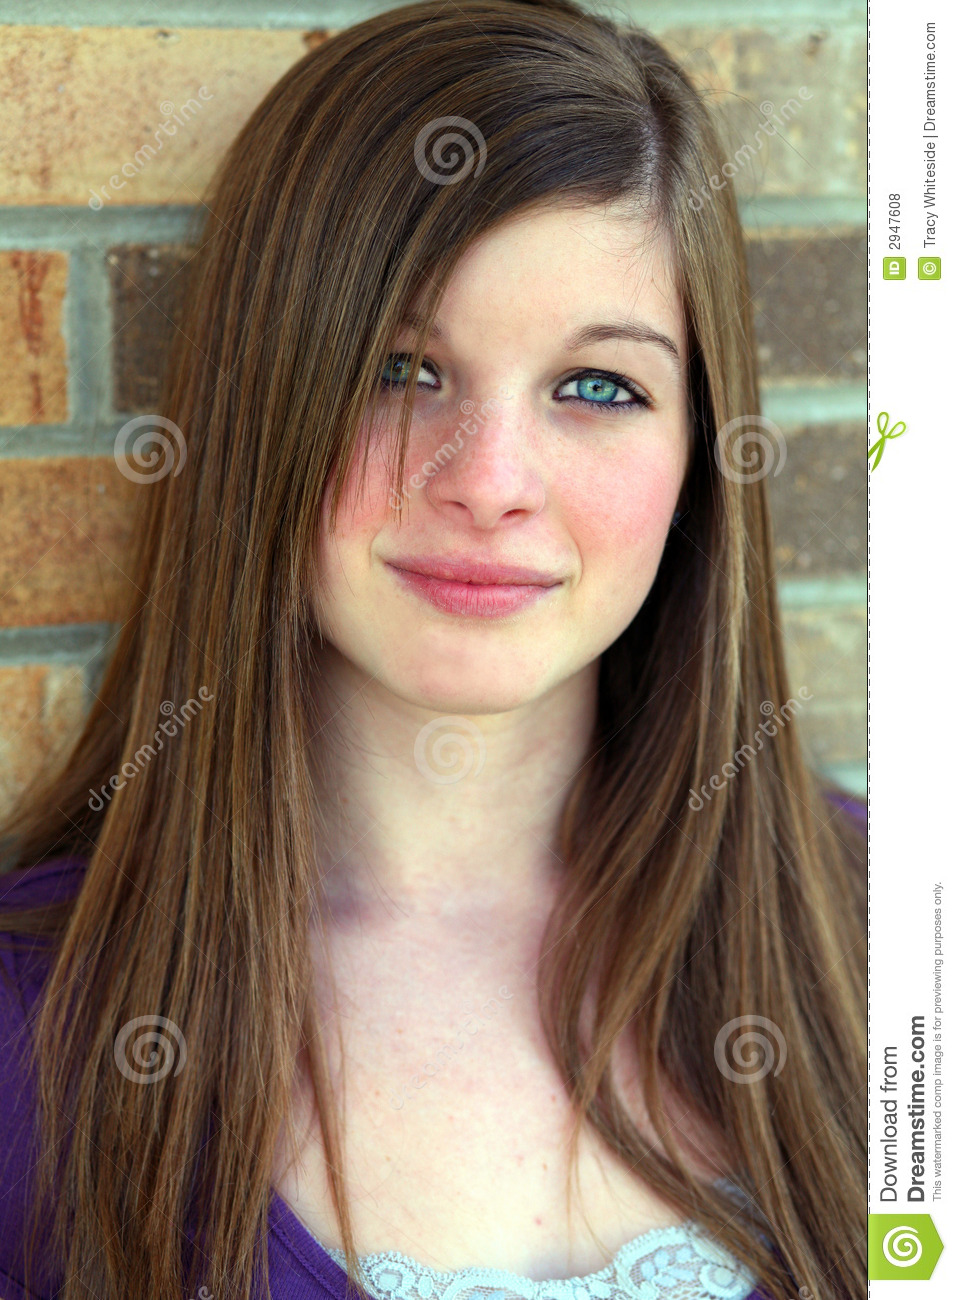 Top Model Stock Photo. Image Of Person, Female, Pose, Face